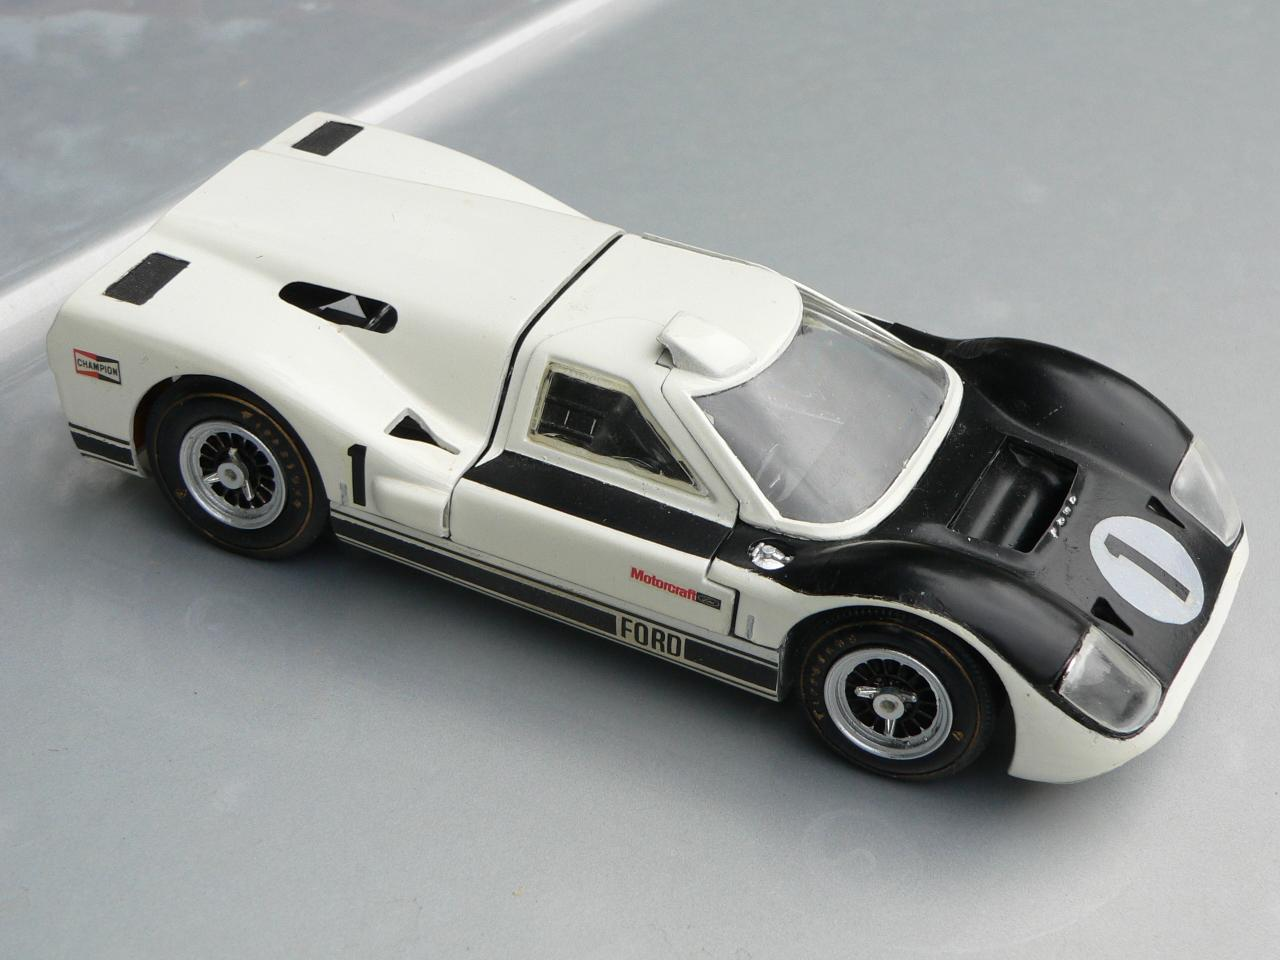 Gt40 For Sale >> Best Model Car Kits/page/2 | Upcomingcarshq.com